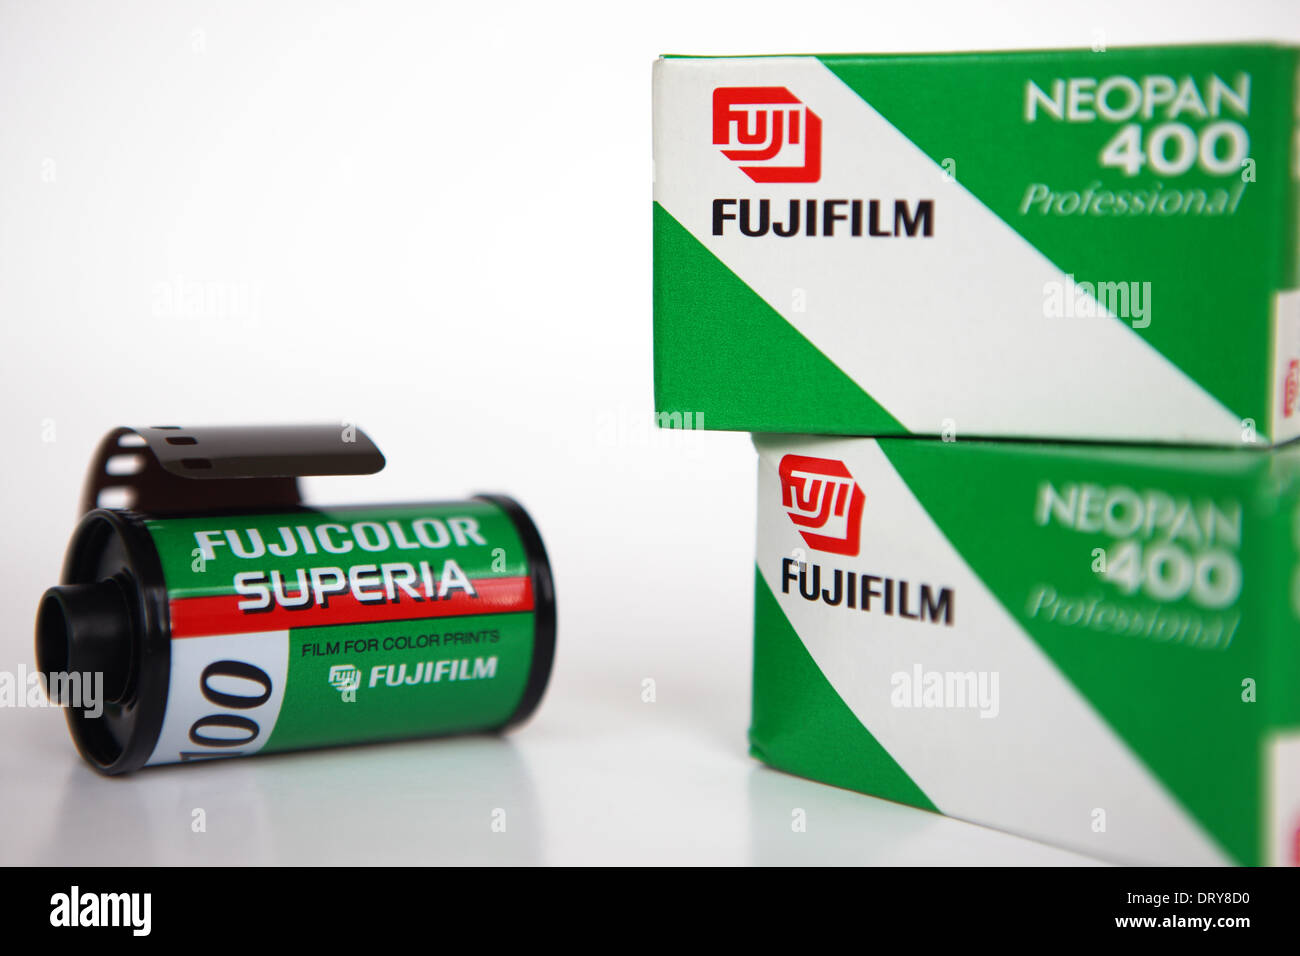 Rolls of 35mm film by Fuji - Stock Image